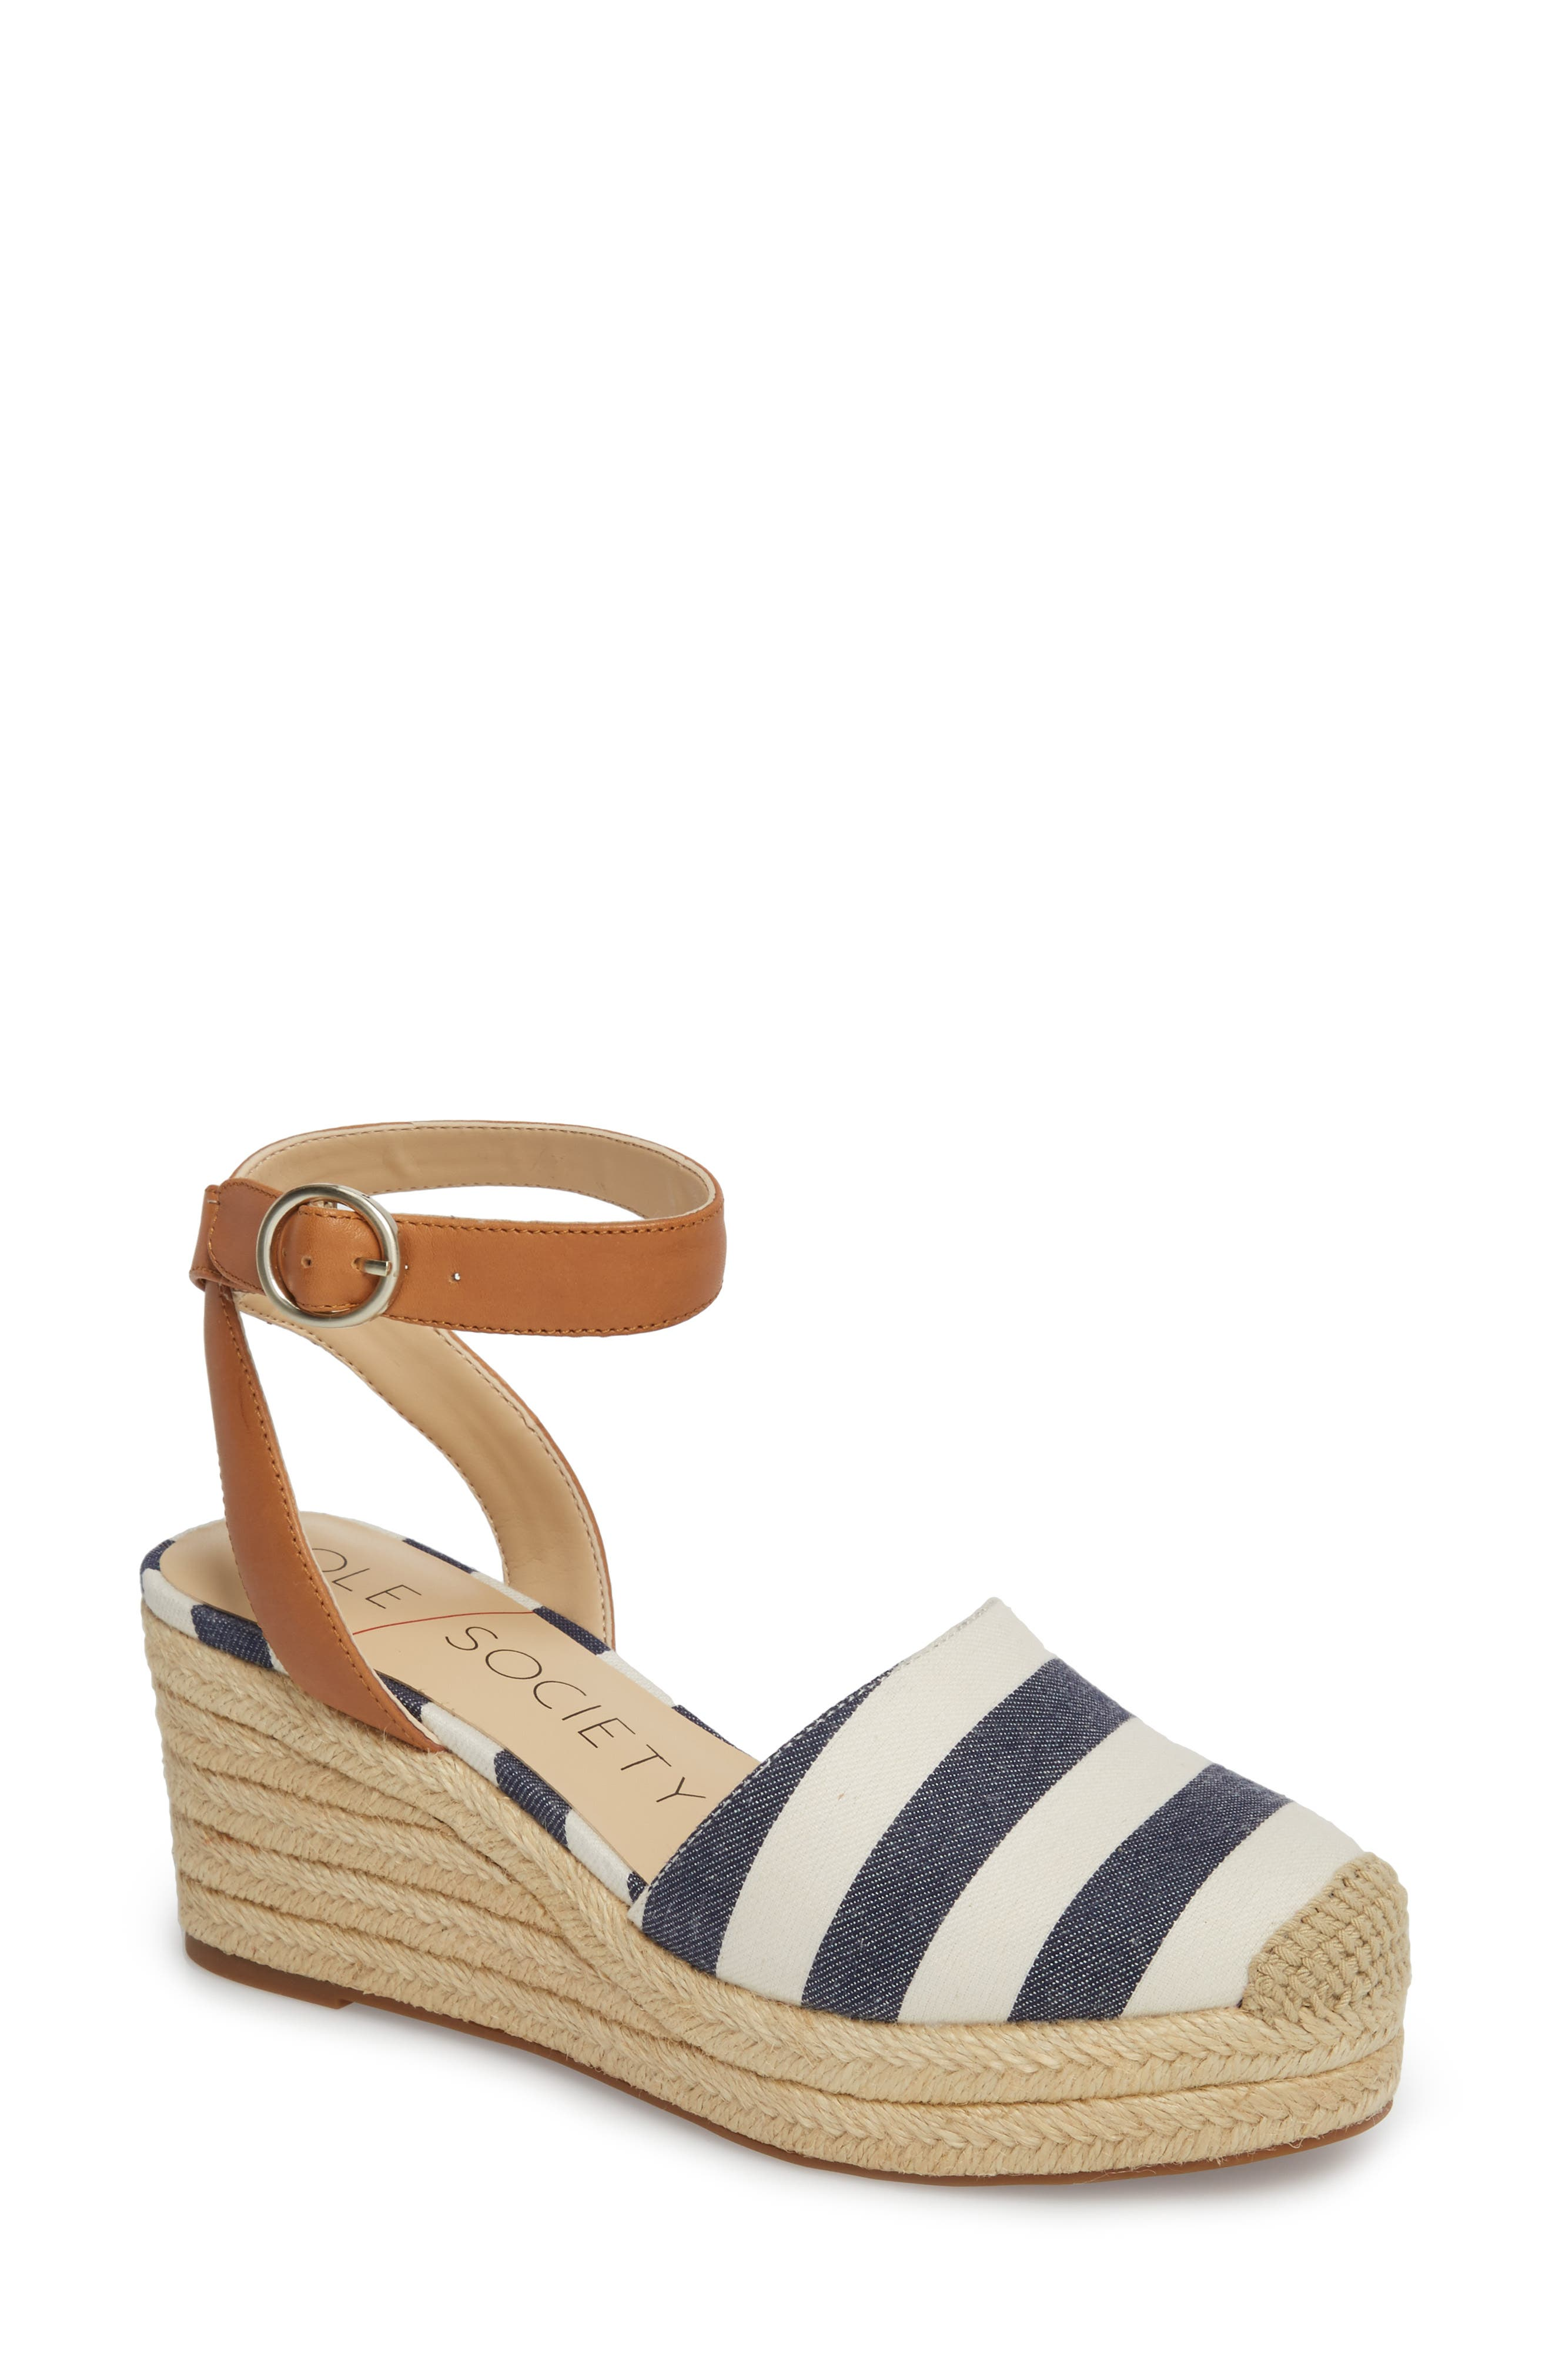 Sole Society Channing Espadrille Sandal (Women)